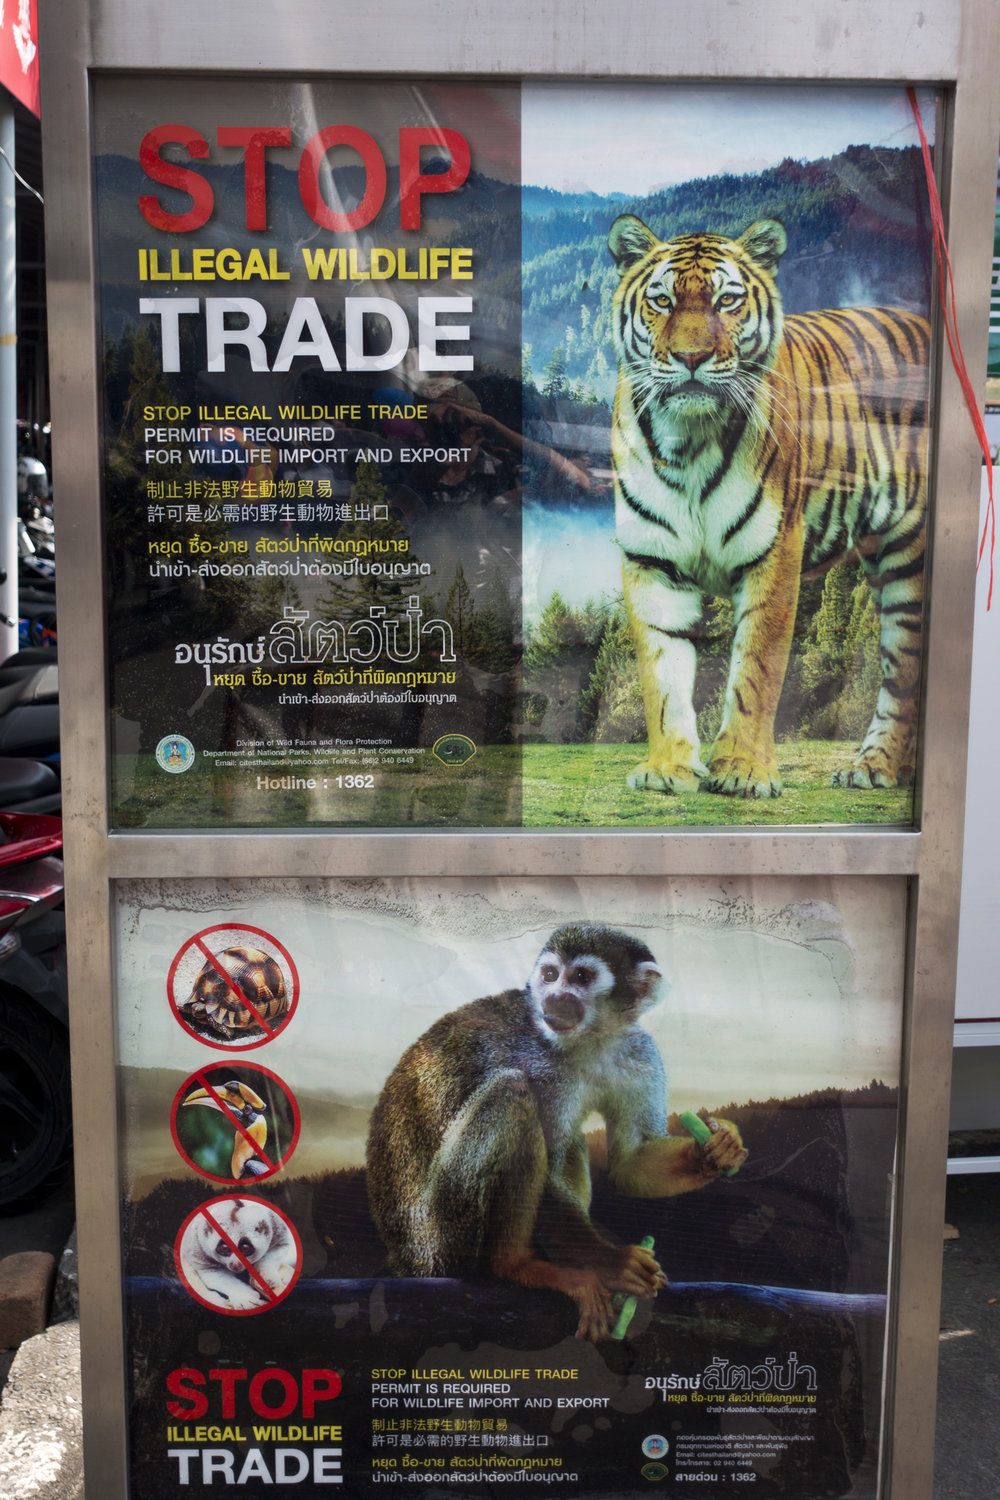 - Signs like this are hung thought the market urging tourists not to buy ivory or endangered animals. These signs are relatively recent, and are due in part by efforts of a NGO group known as Freeland. It is Freeland's goal to protect vulnerable wildlife and people from organized crime and corruption. Headquartered in Bangkok, I met with their Communications Director, Matthew Pritchett. I asked him of the progress that has been made in stopping the illegal animal trade and what hurdles still remain. He was both optimistic and realistic, relating the good progress that has been made in recent years and acknowledging the shortfalls and gaps that still remain.